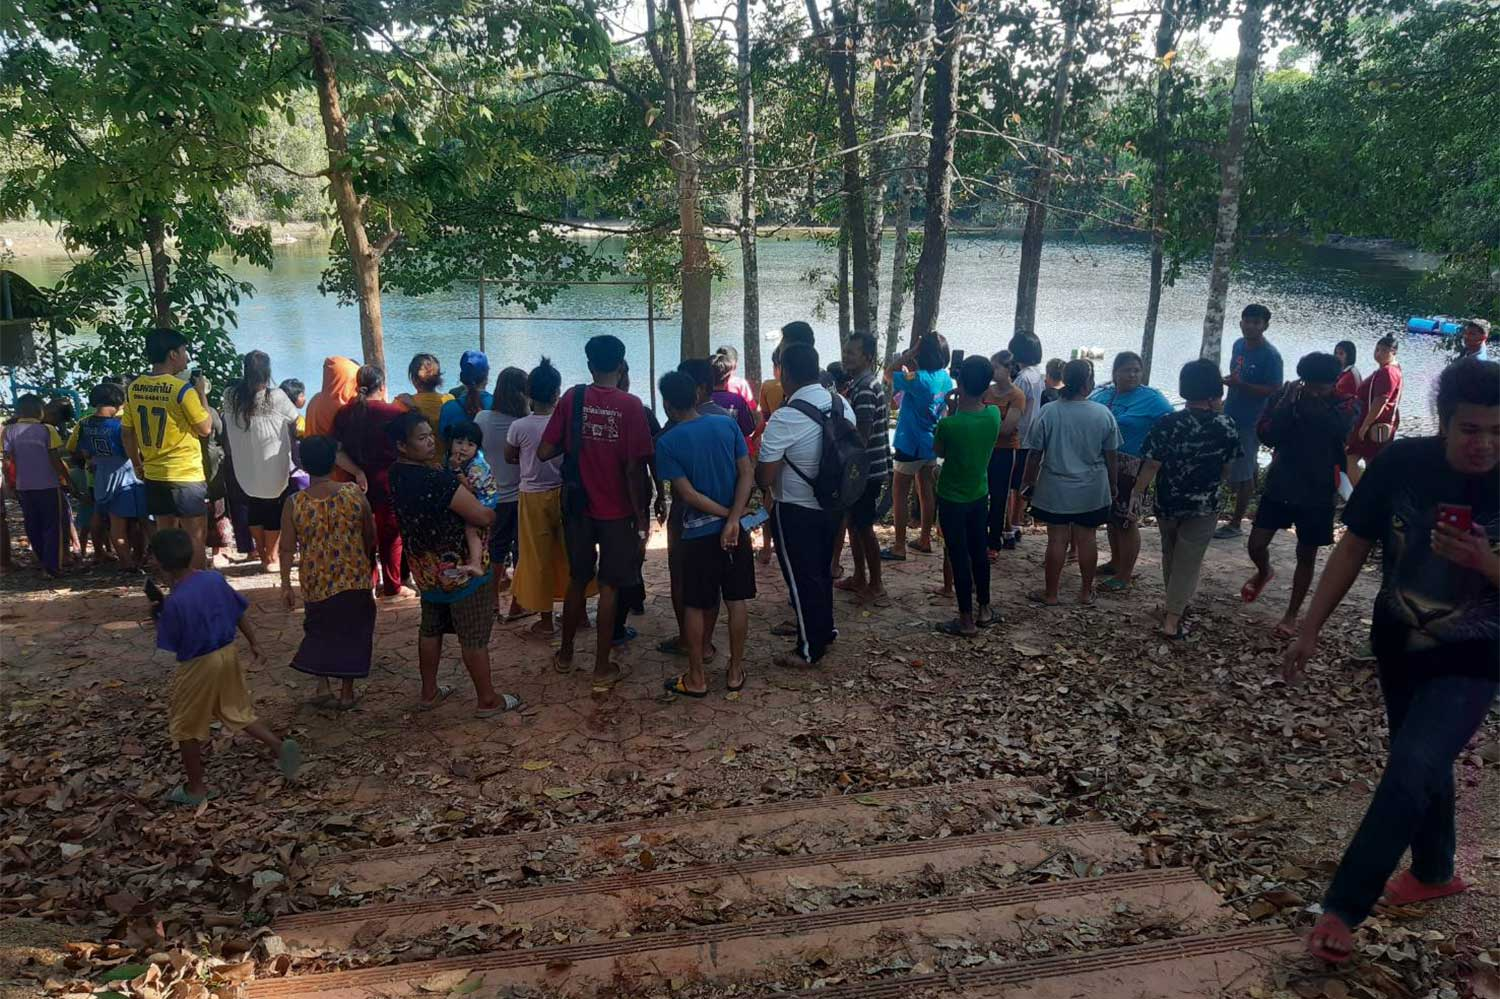 Onlookers gather at Talay Songhong Park as rescue workers collect the body of 47-year-old Tosak Warinchaikamon, an experienced diver found dead at the popular cave diving site in Thung Yai district, Nakhon Si Thammarat, on Wednesday afternoon. (Photo: Nujaree Raekrun)